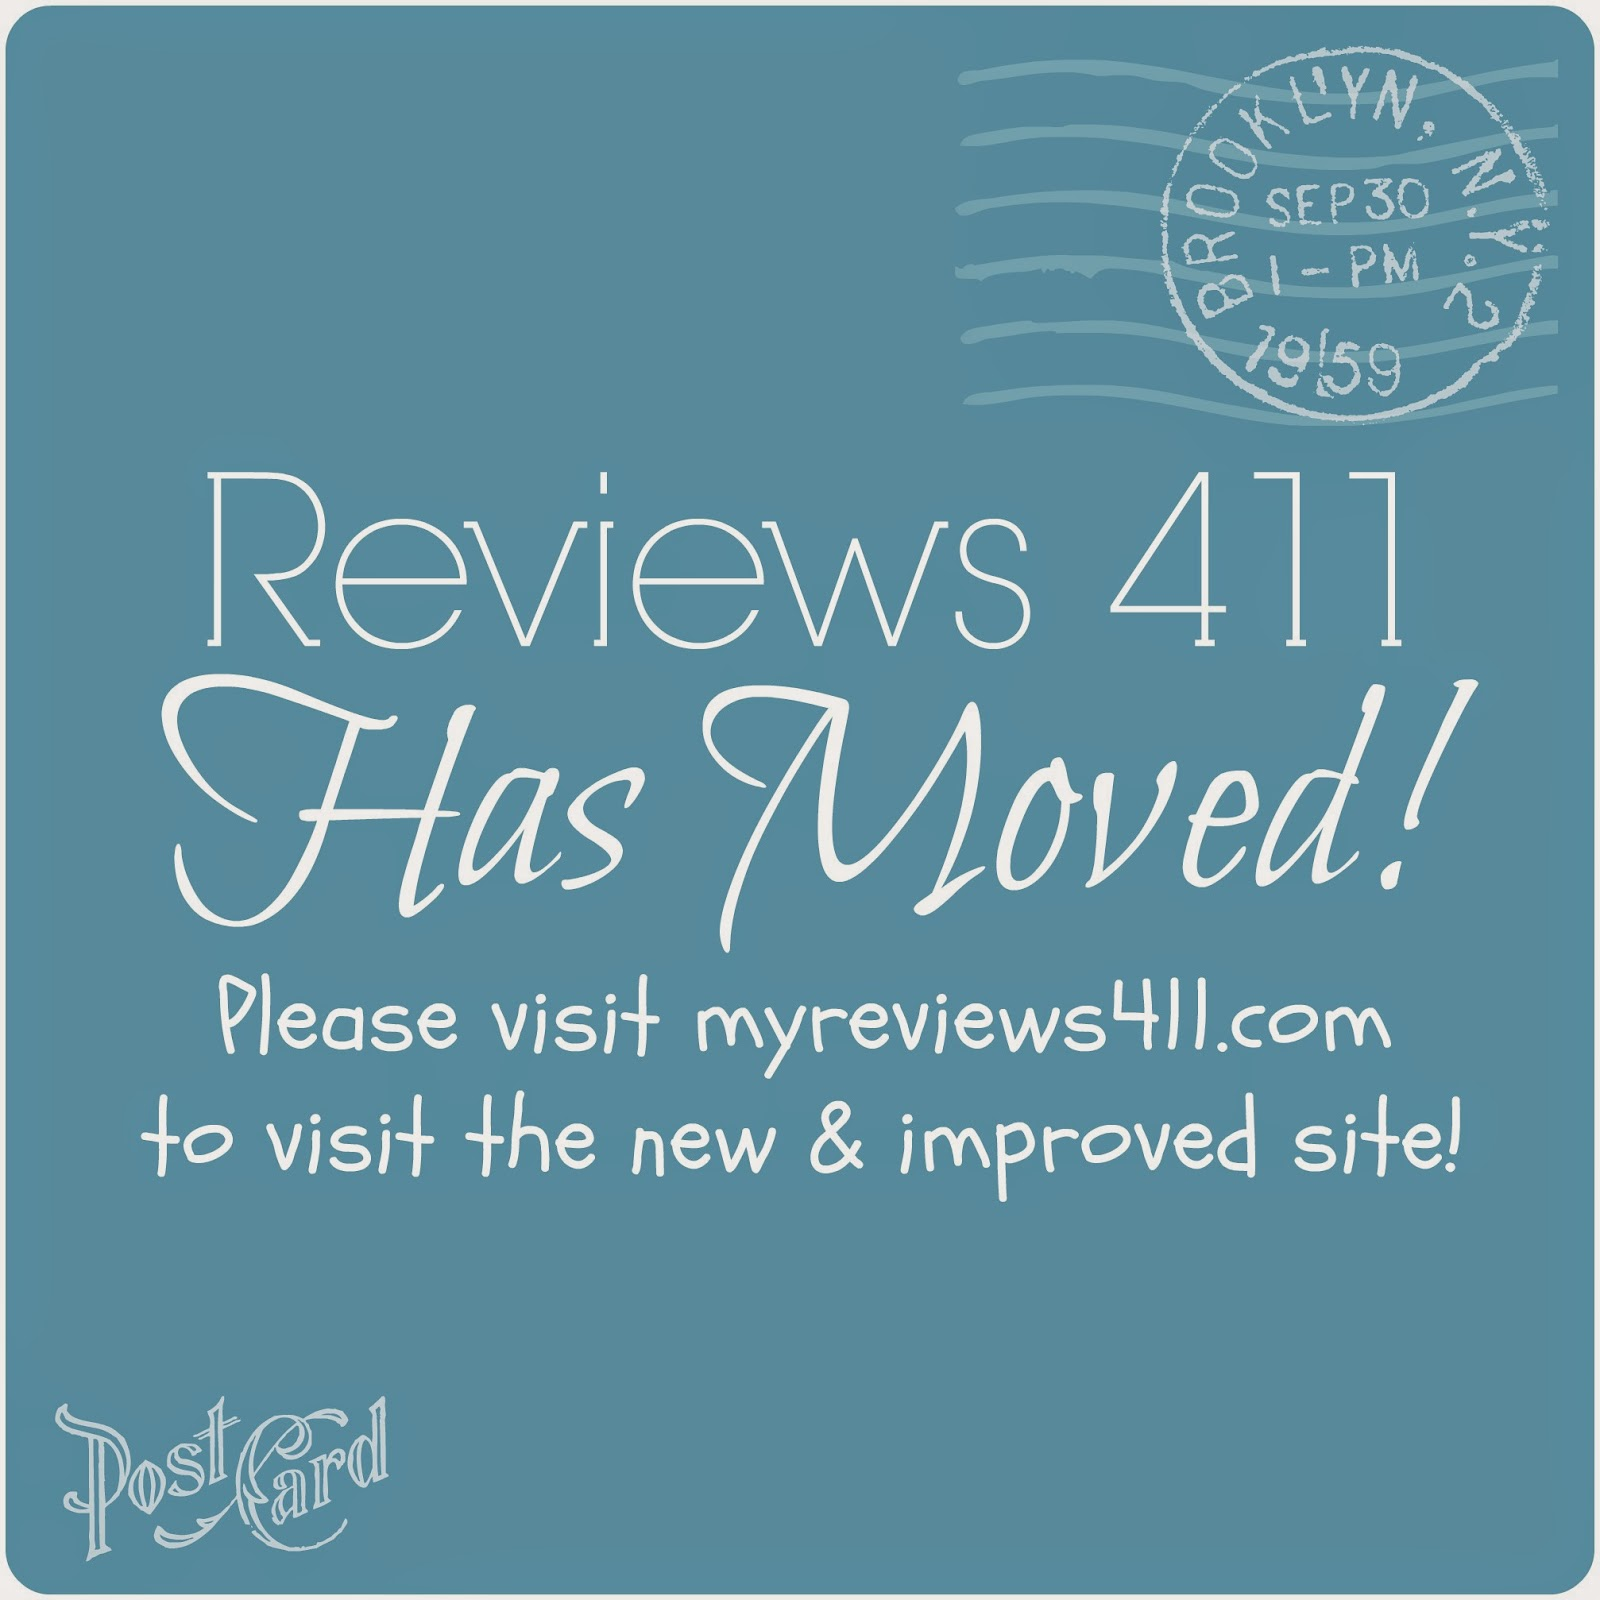 Reviews 411 has moved! Please visit myreviews411.com to see the new and improved blog